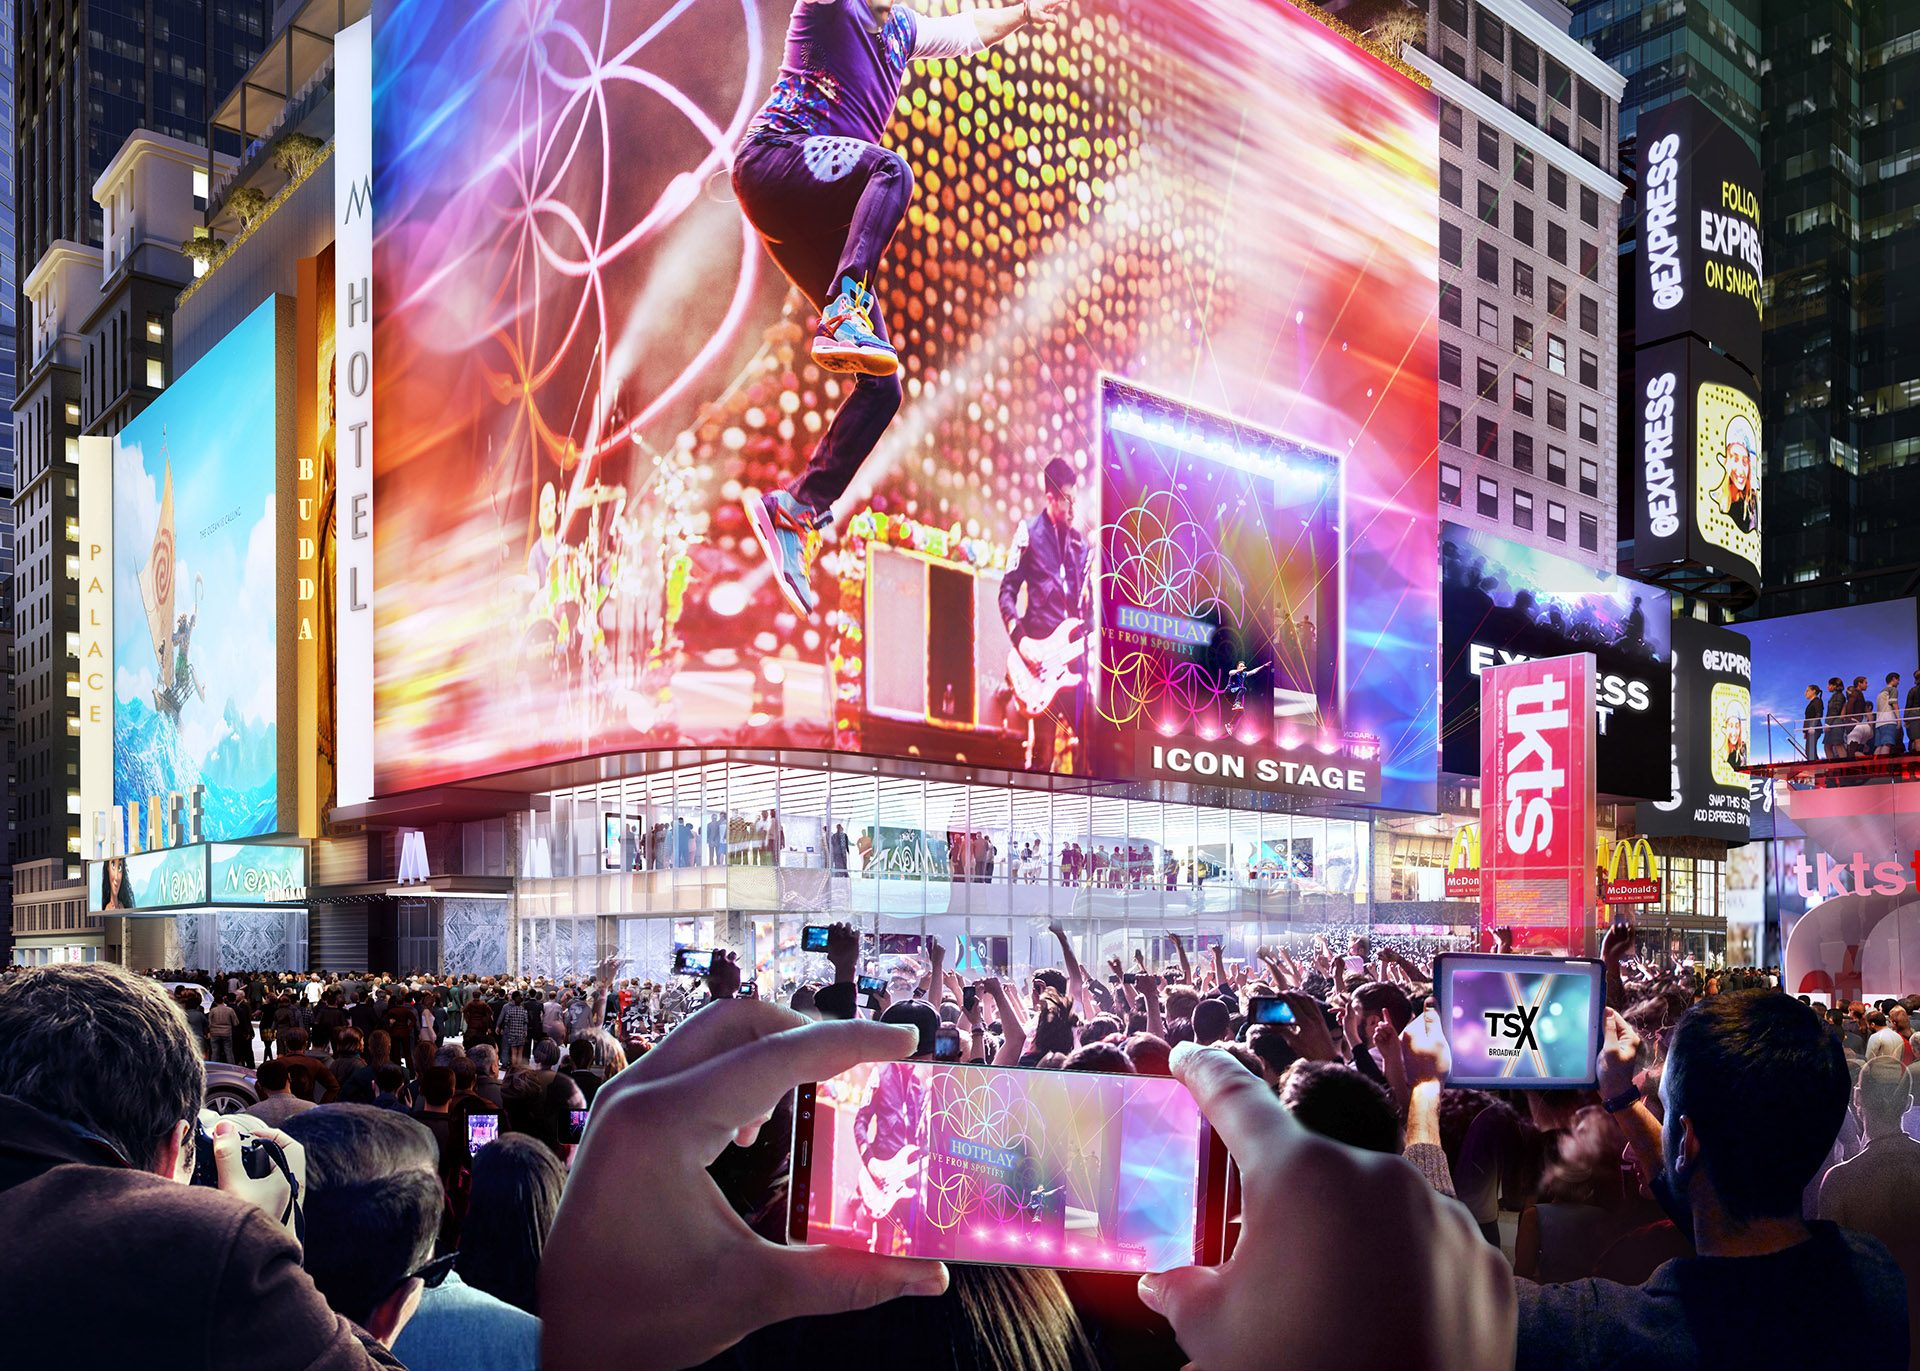 The new Icon Stage from the corner of 1568 Broadway